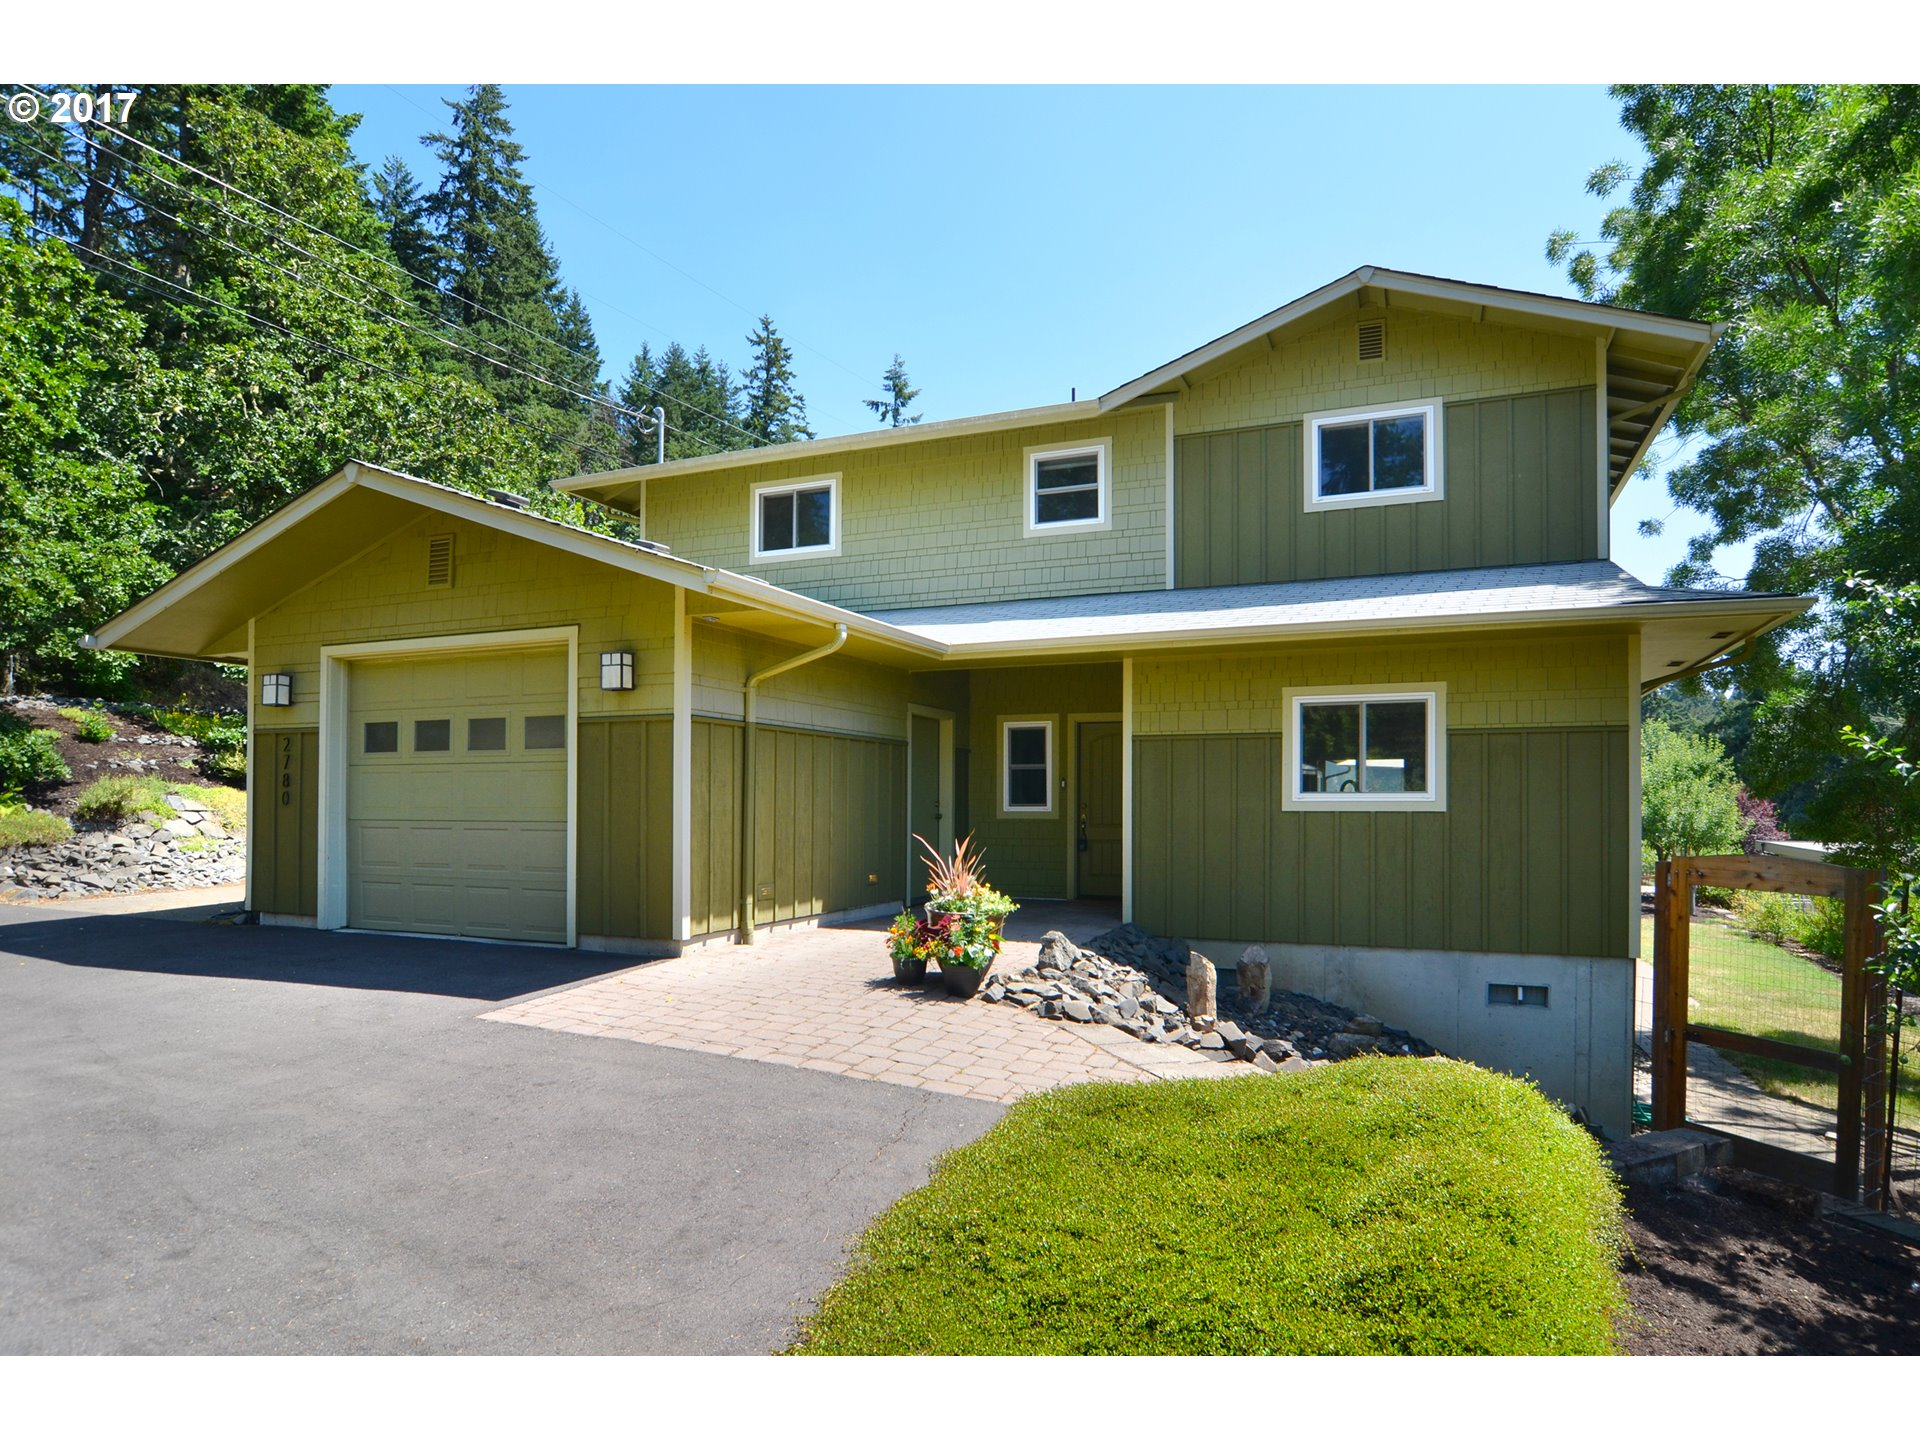 2780 SPRING BLVD, Eugene, OR 97403